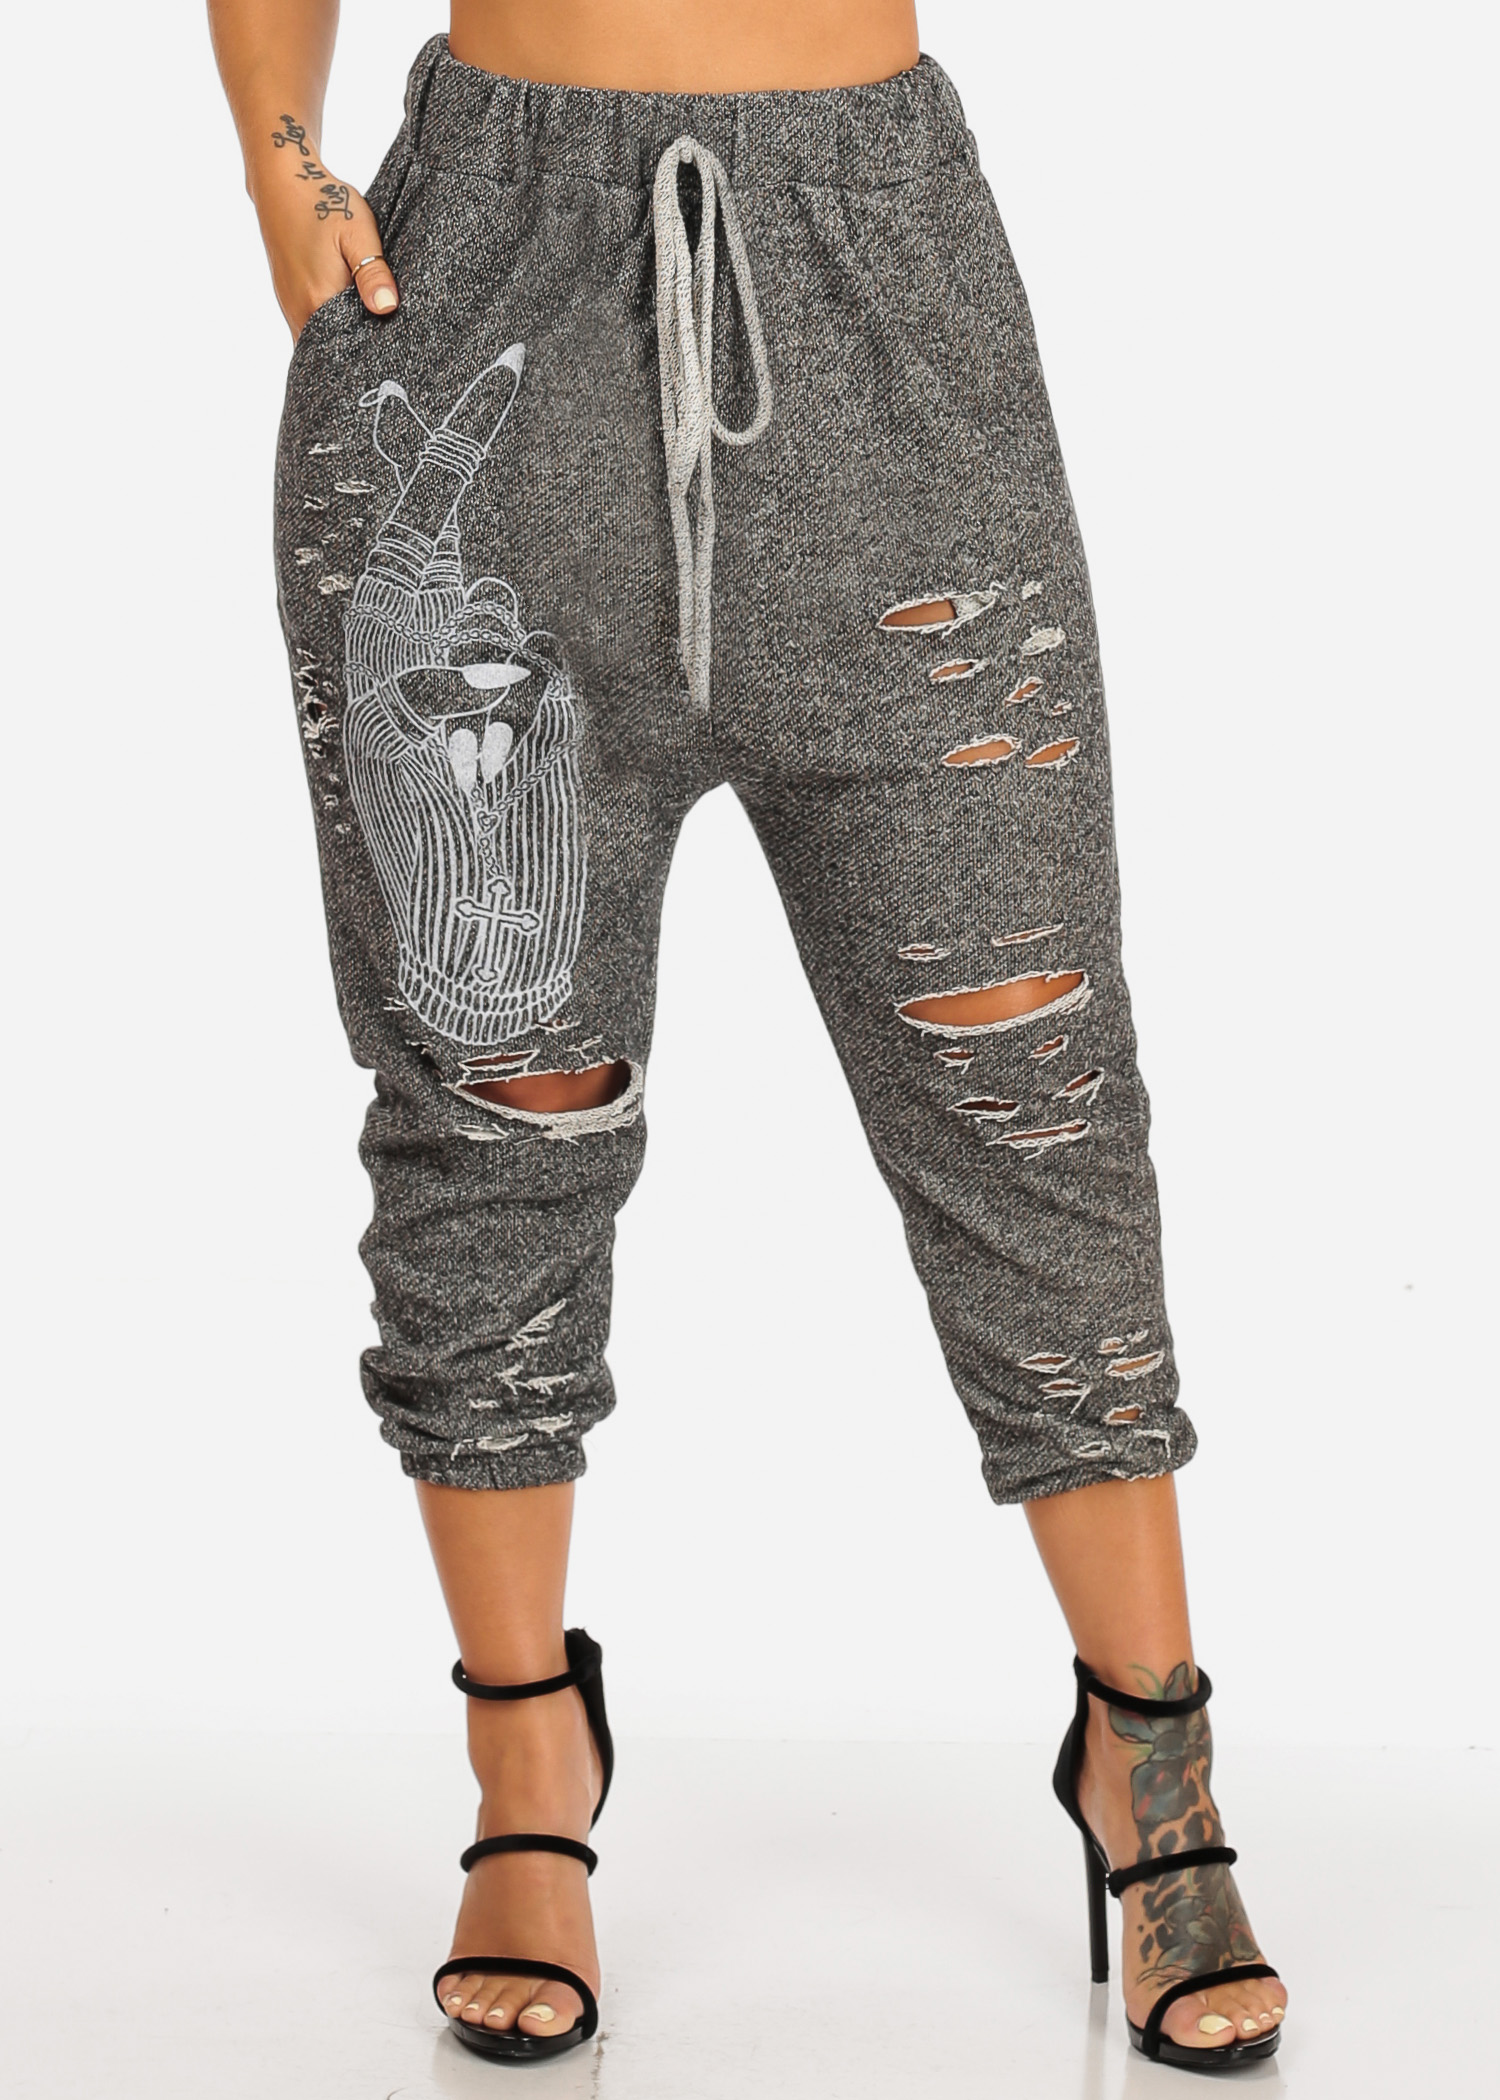 Womens Juniors Graphic Print High Rise Pull On Style Distressed Capri Charcoal Joggers 41341R